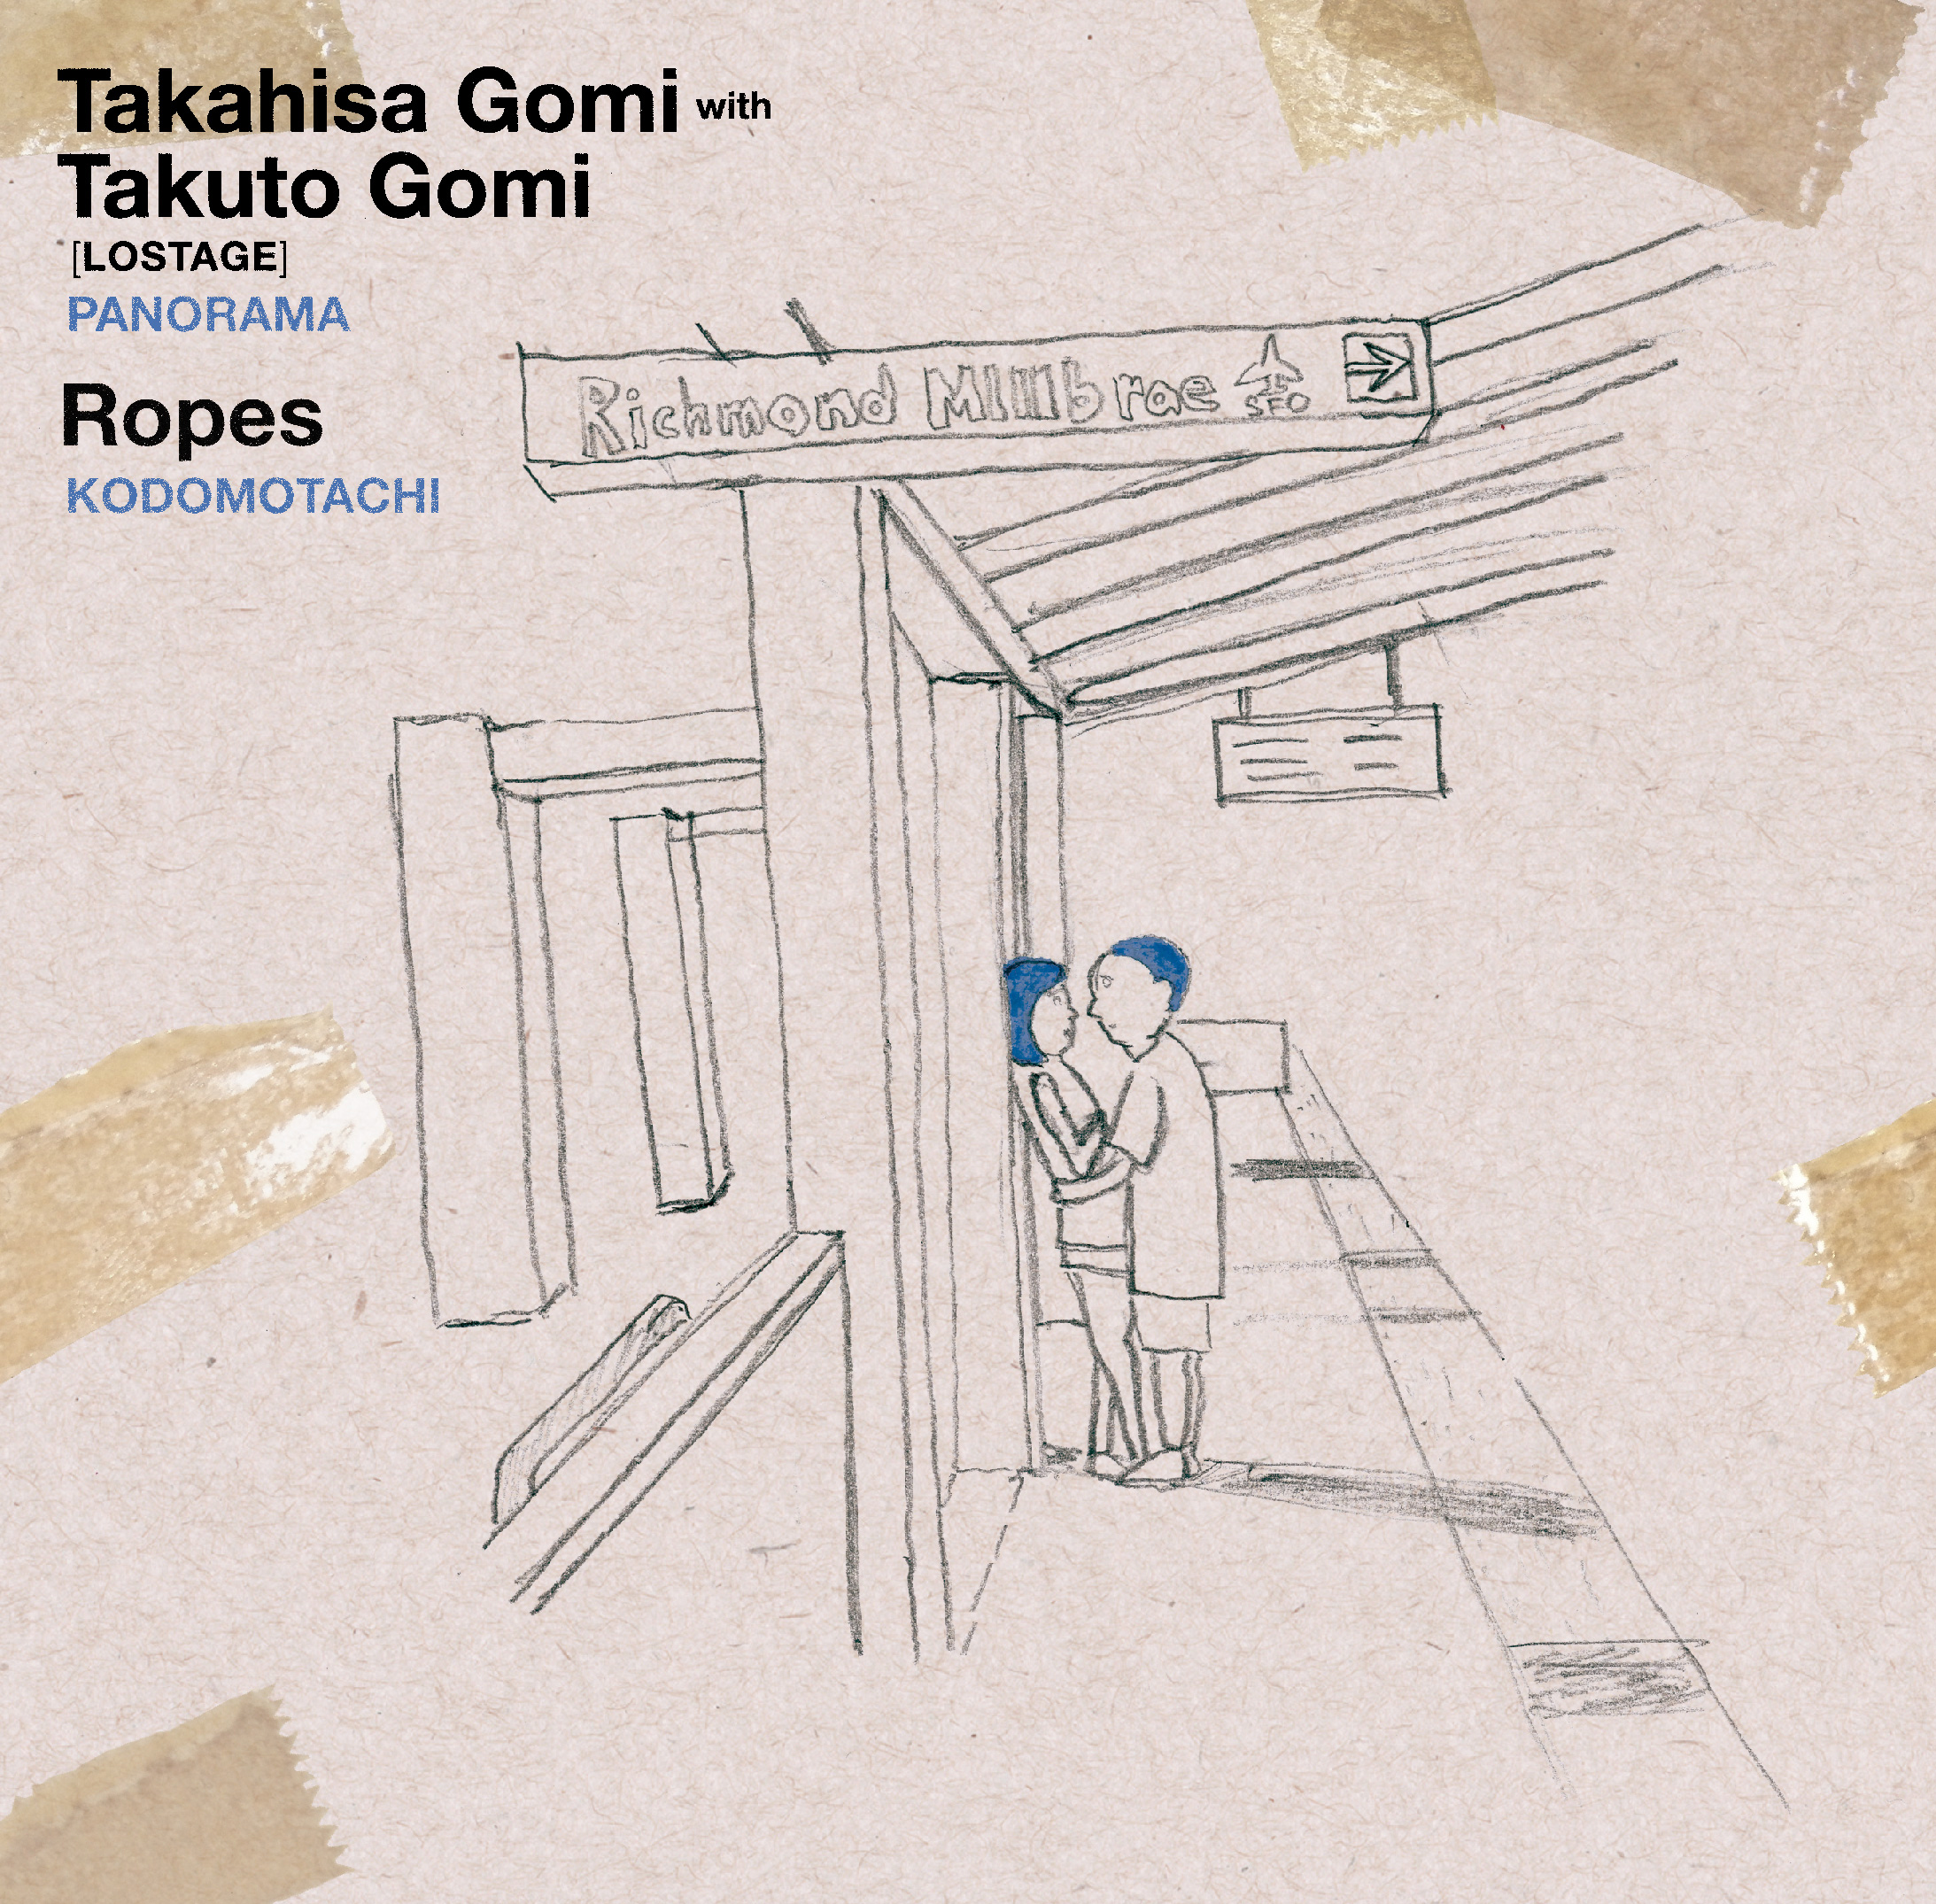 LOSTAGEの五味兄弟とRopes 7INCH